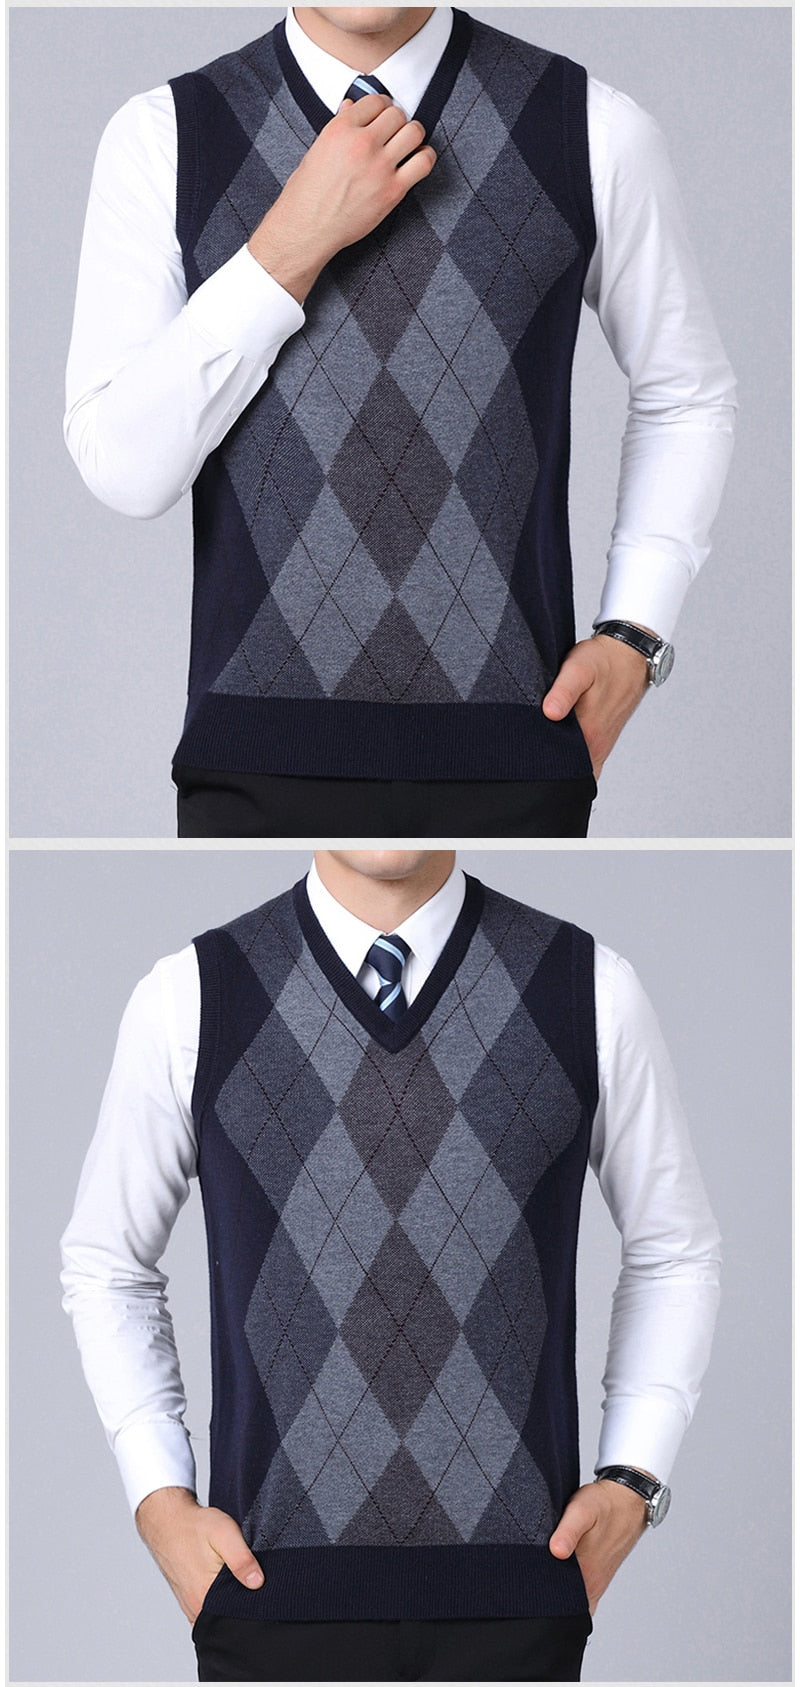 1b45535117 2019 New Fashion Brand Sweaters Mens Pullovers V Neck Slim Fit Jumpers Knit  Sleeveless Autumn Korean